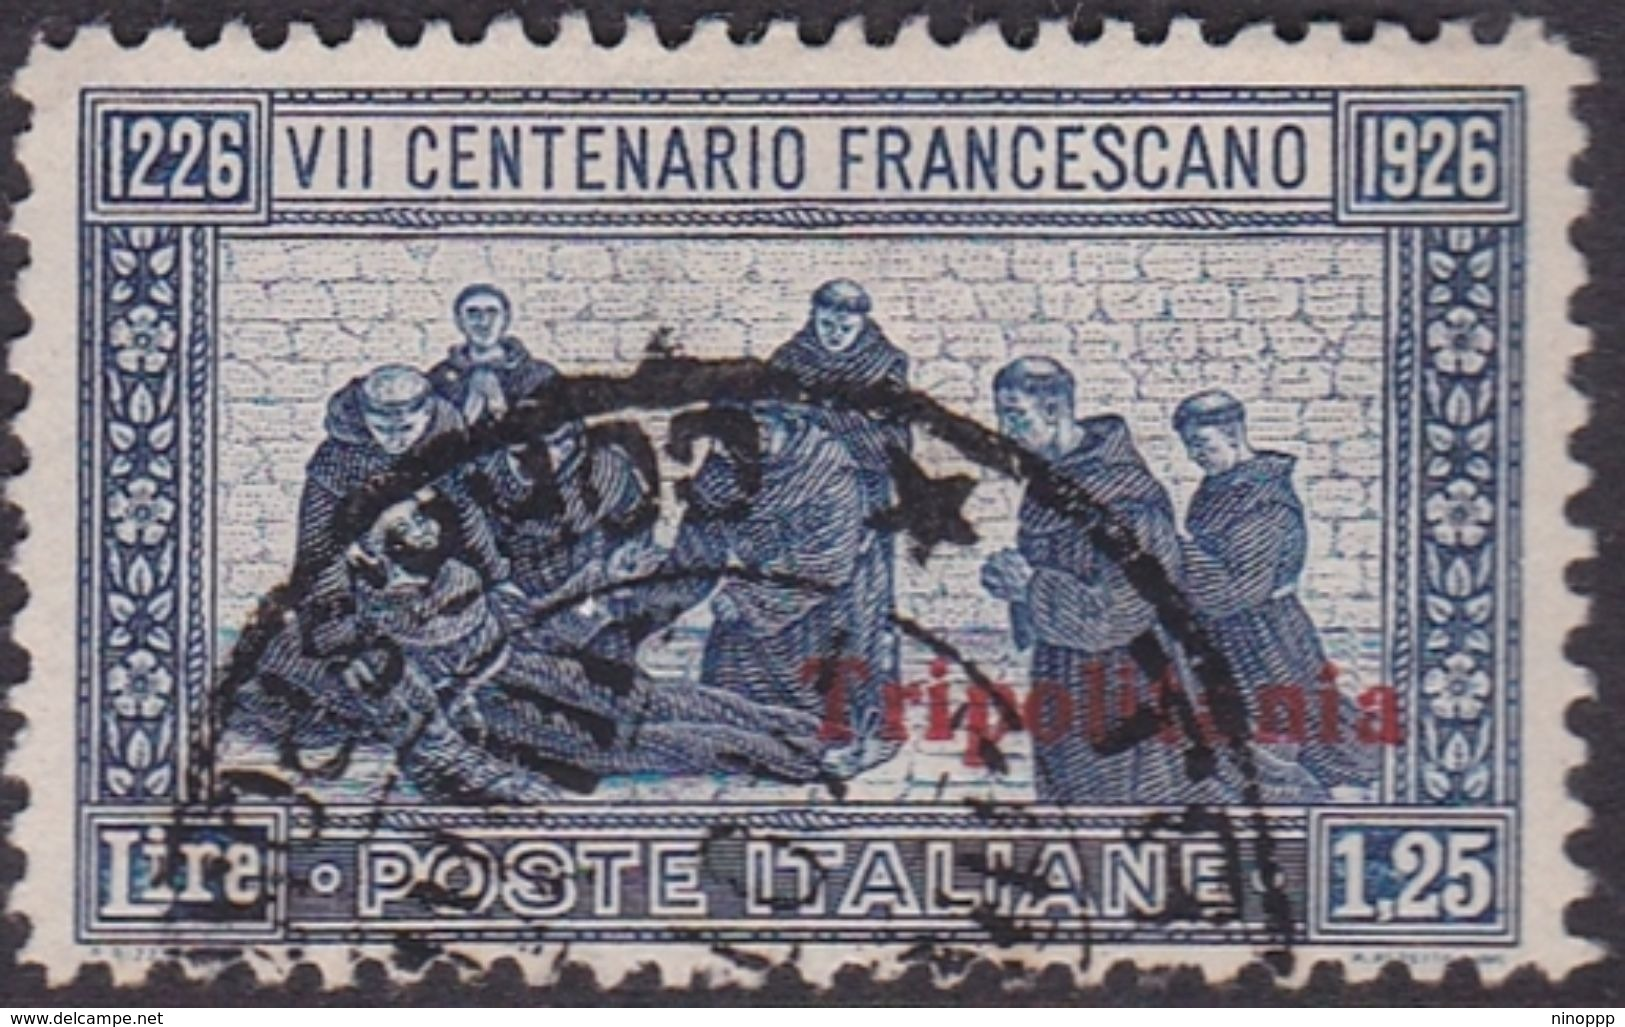 Italy-Colonies And Territories-Tripolitania S28 1926 St Francis Of Assis, Lire 1.25 Blue,used - Tripolitania